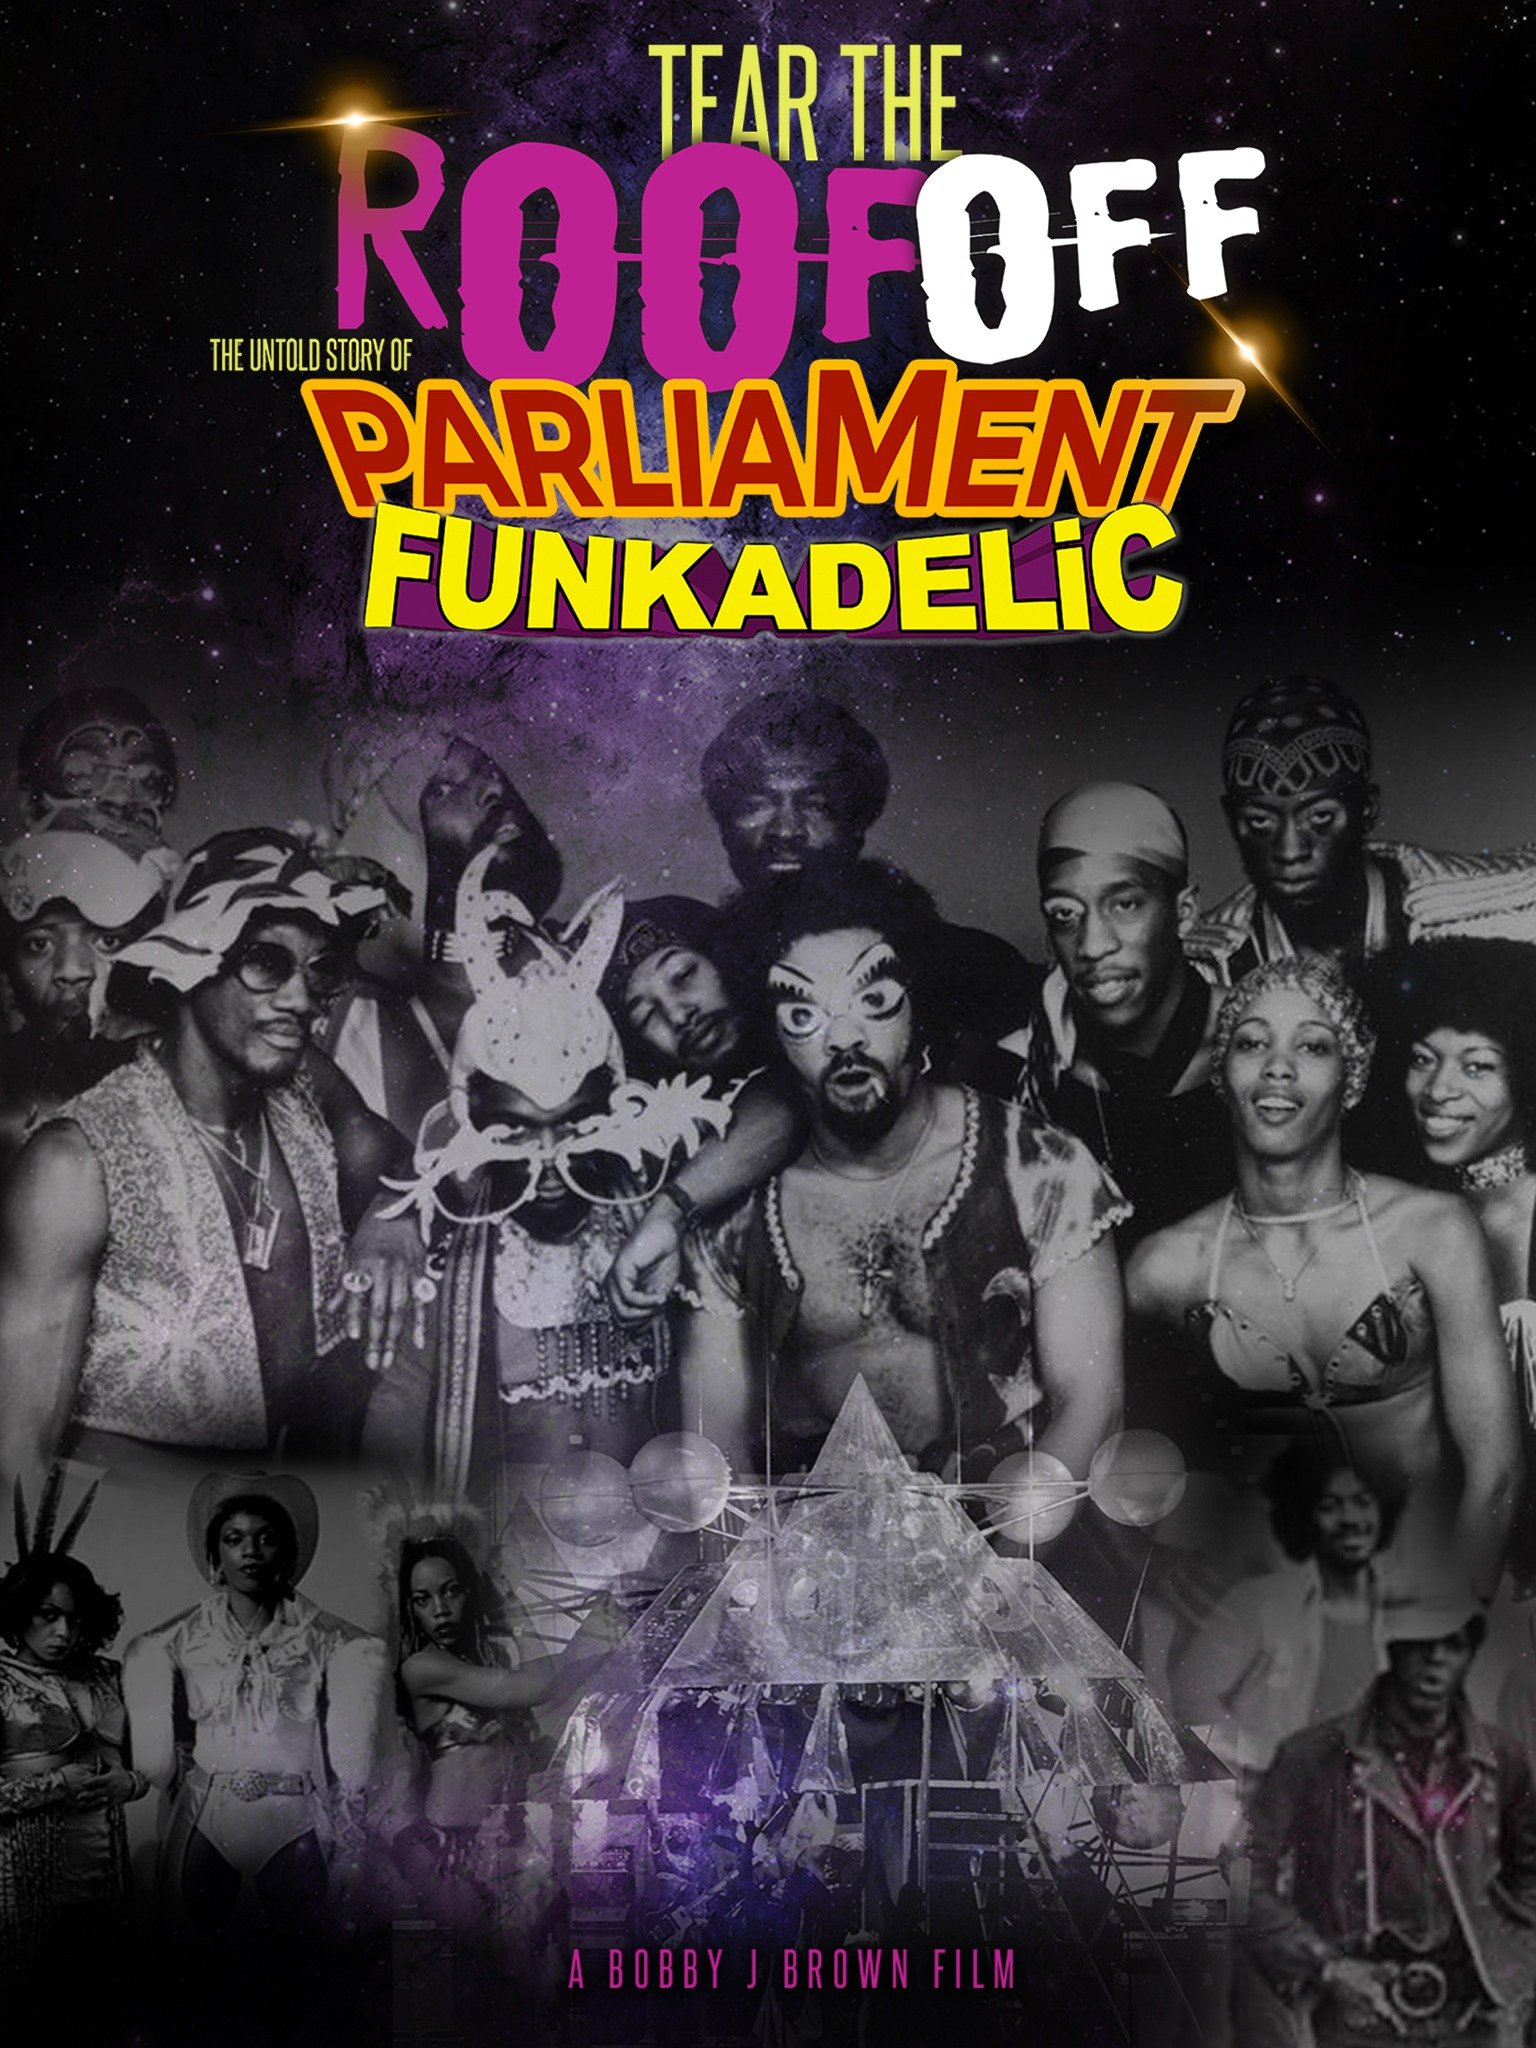 Tear the Roof Off-The Untold Story of Parliament Funkadelic